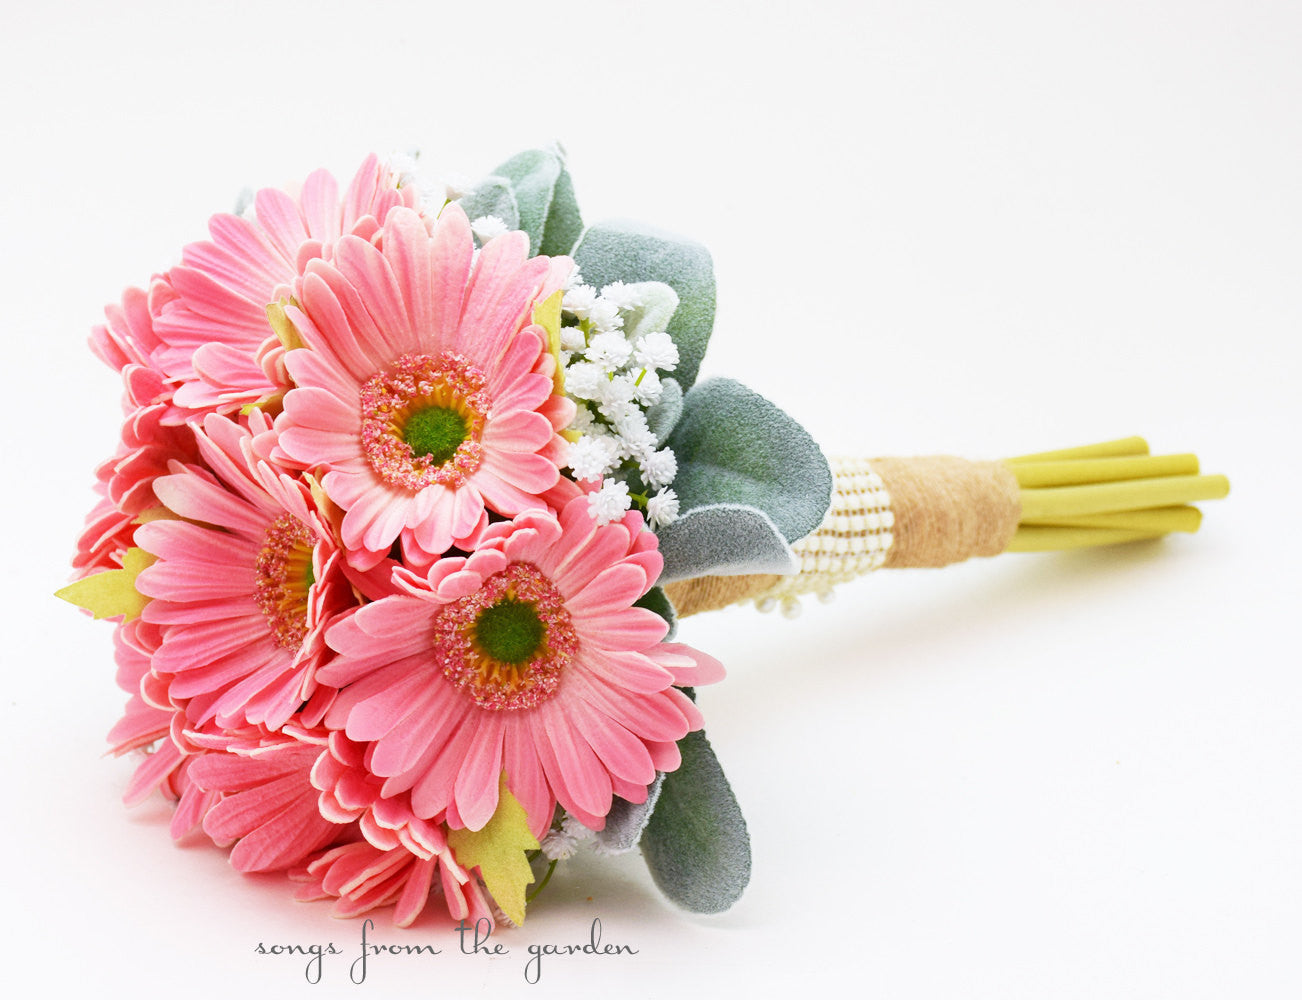 Pink Bridesmaid Bouquet Real Touch Gerber Daisies Baby's Breath Lamb's Ear Leaves Burlap Ribbon